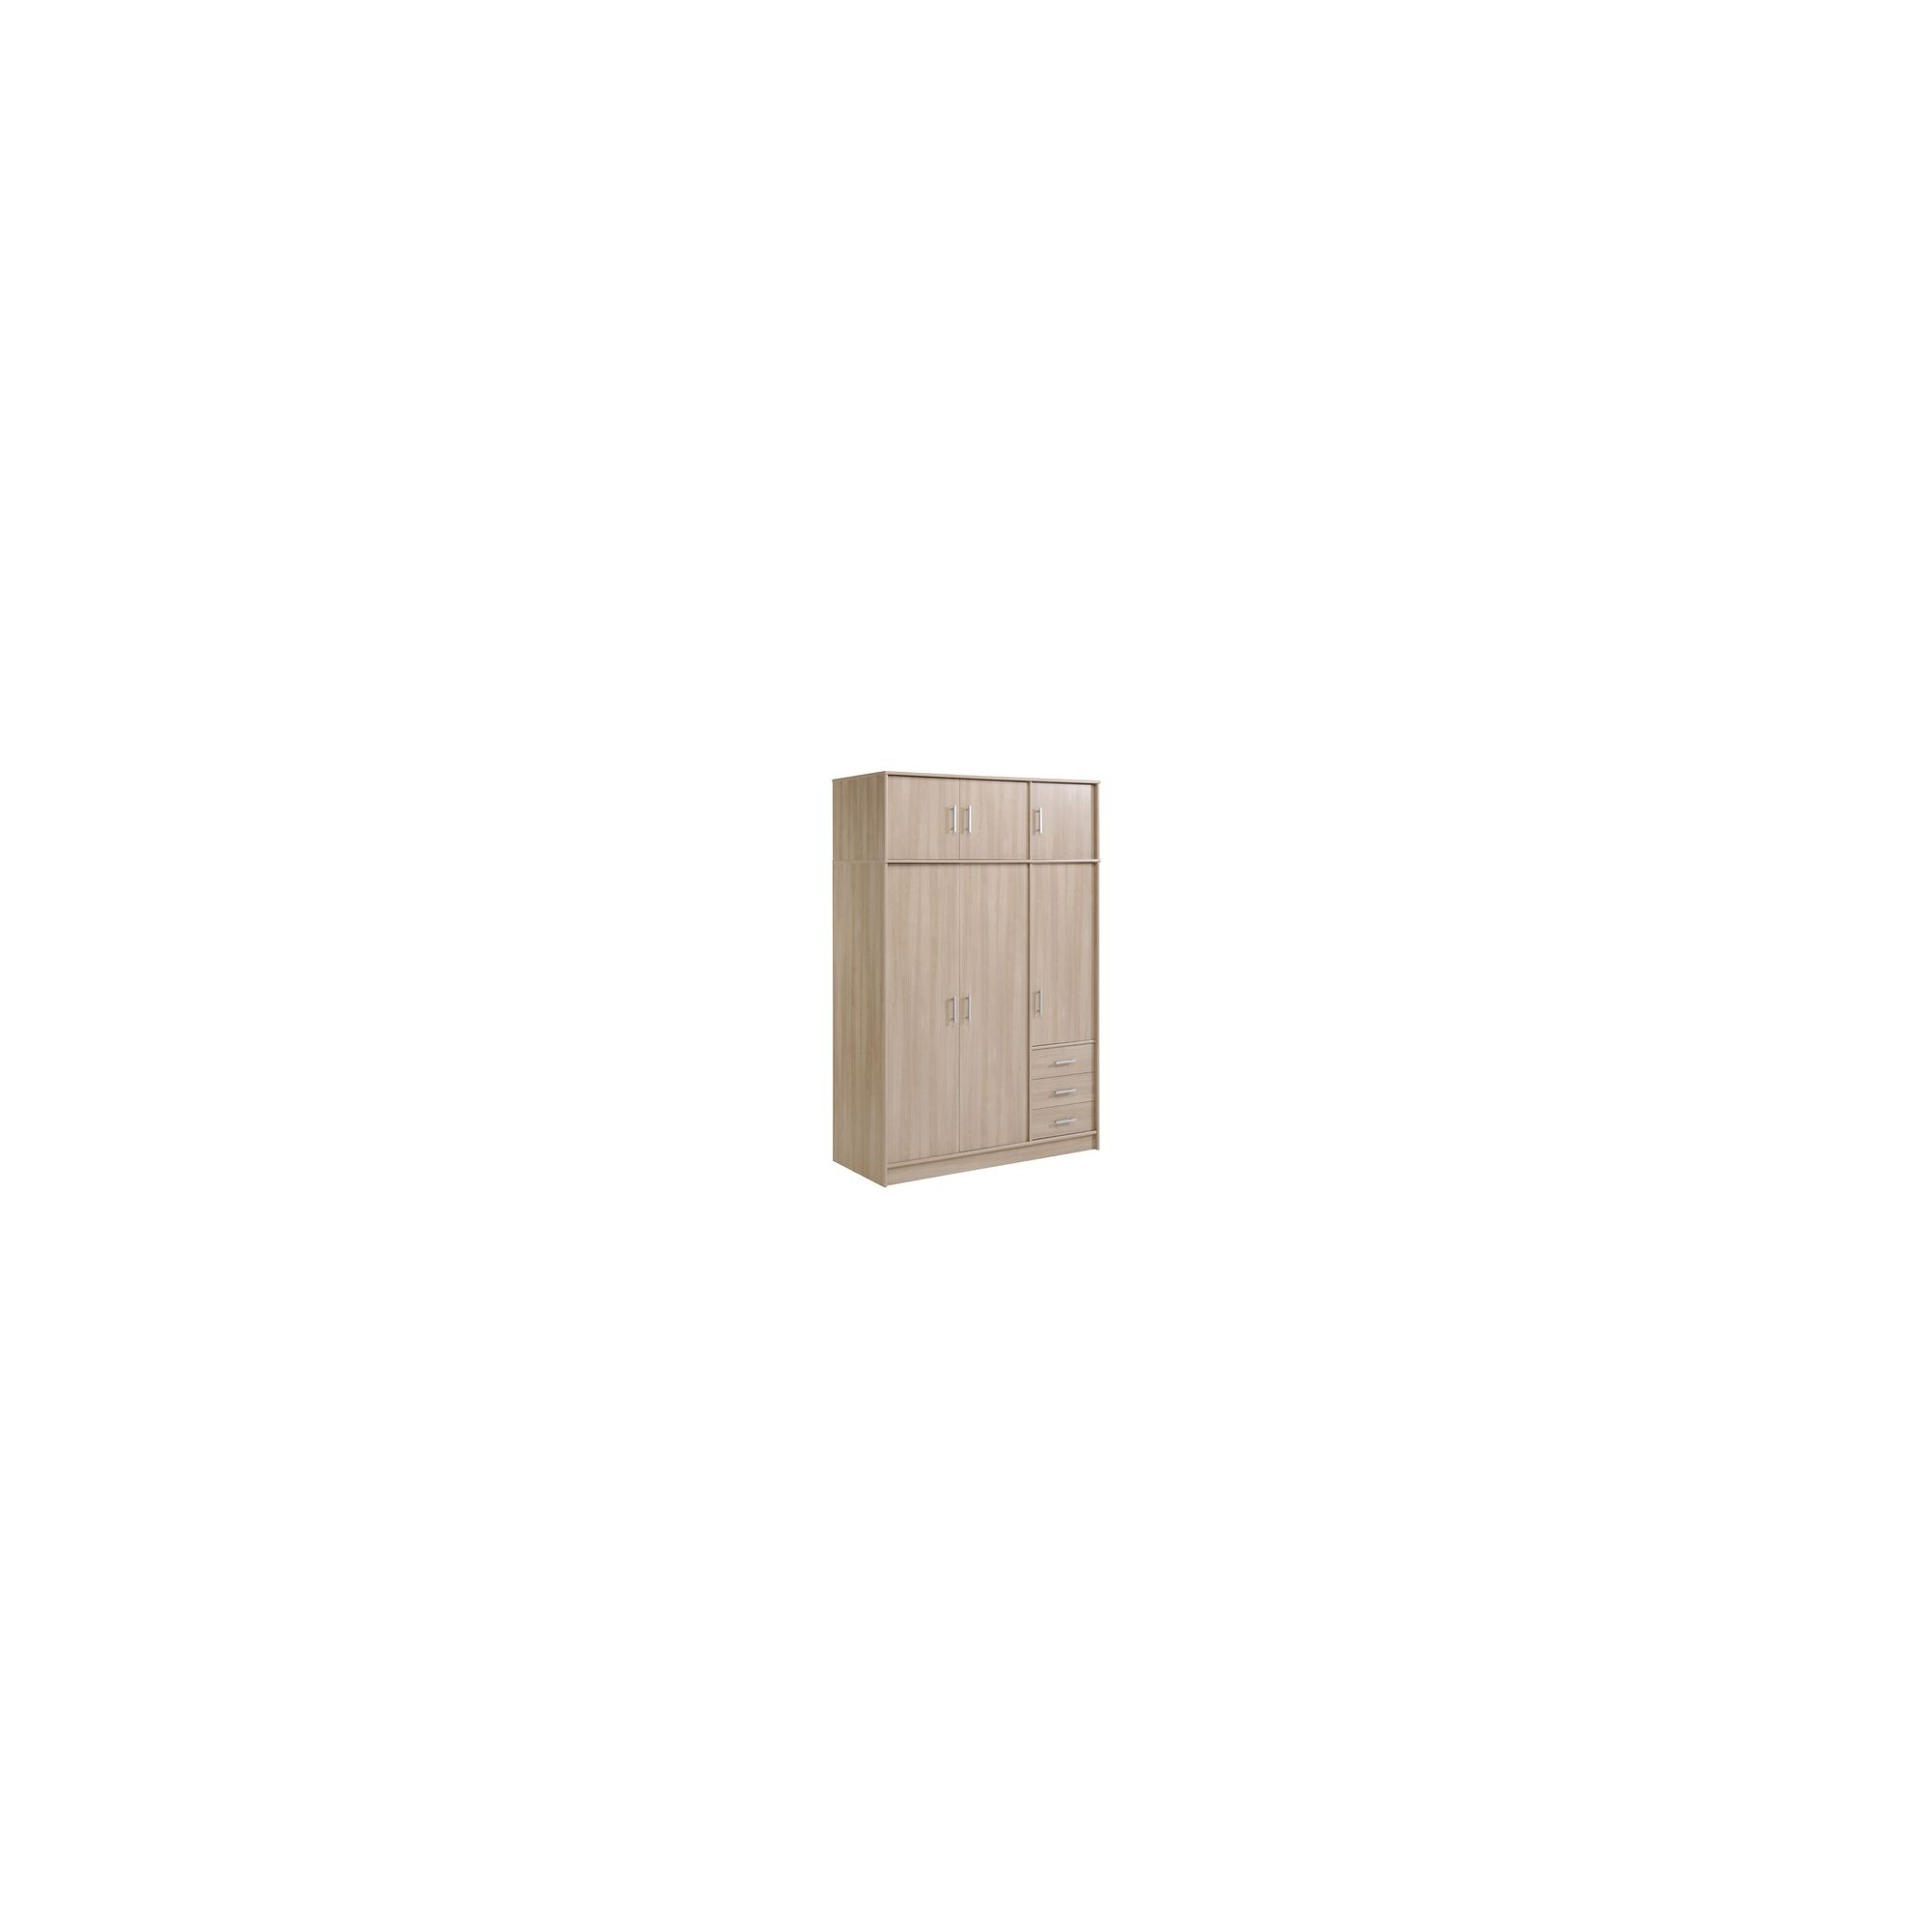 Parisot Essential Wardrobe with 6 Doors and 3 Drawers - Bruges at Tesco Direct